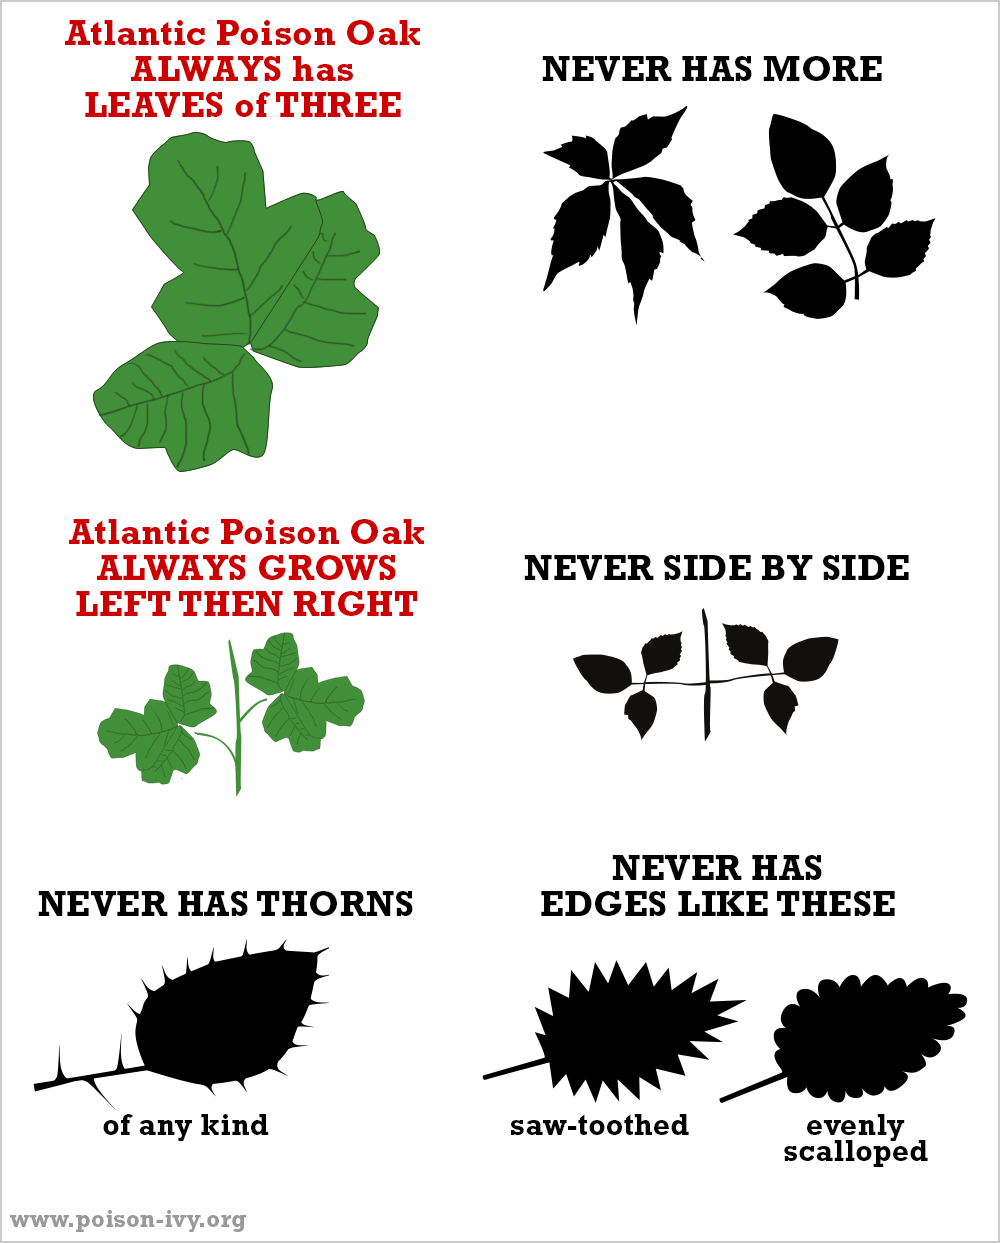 atlantic poison oak always-never chart